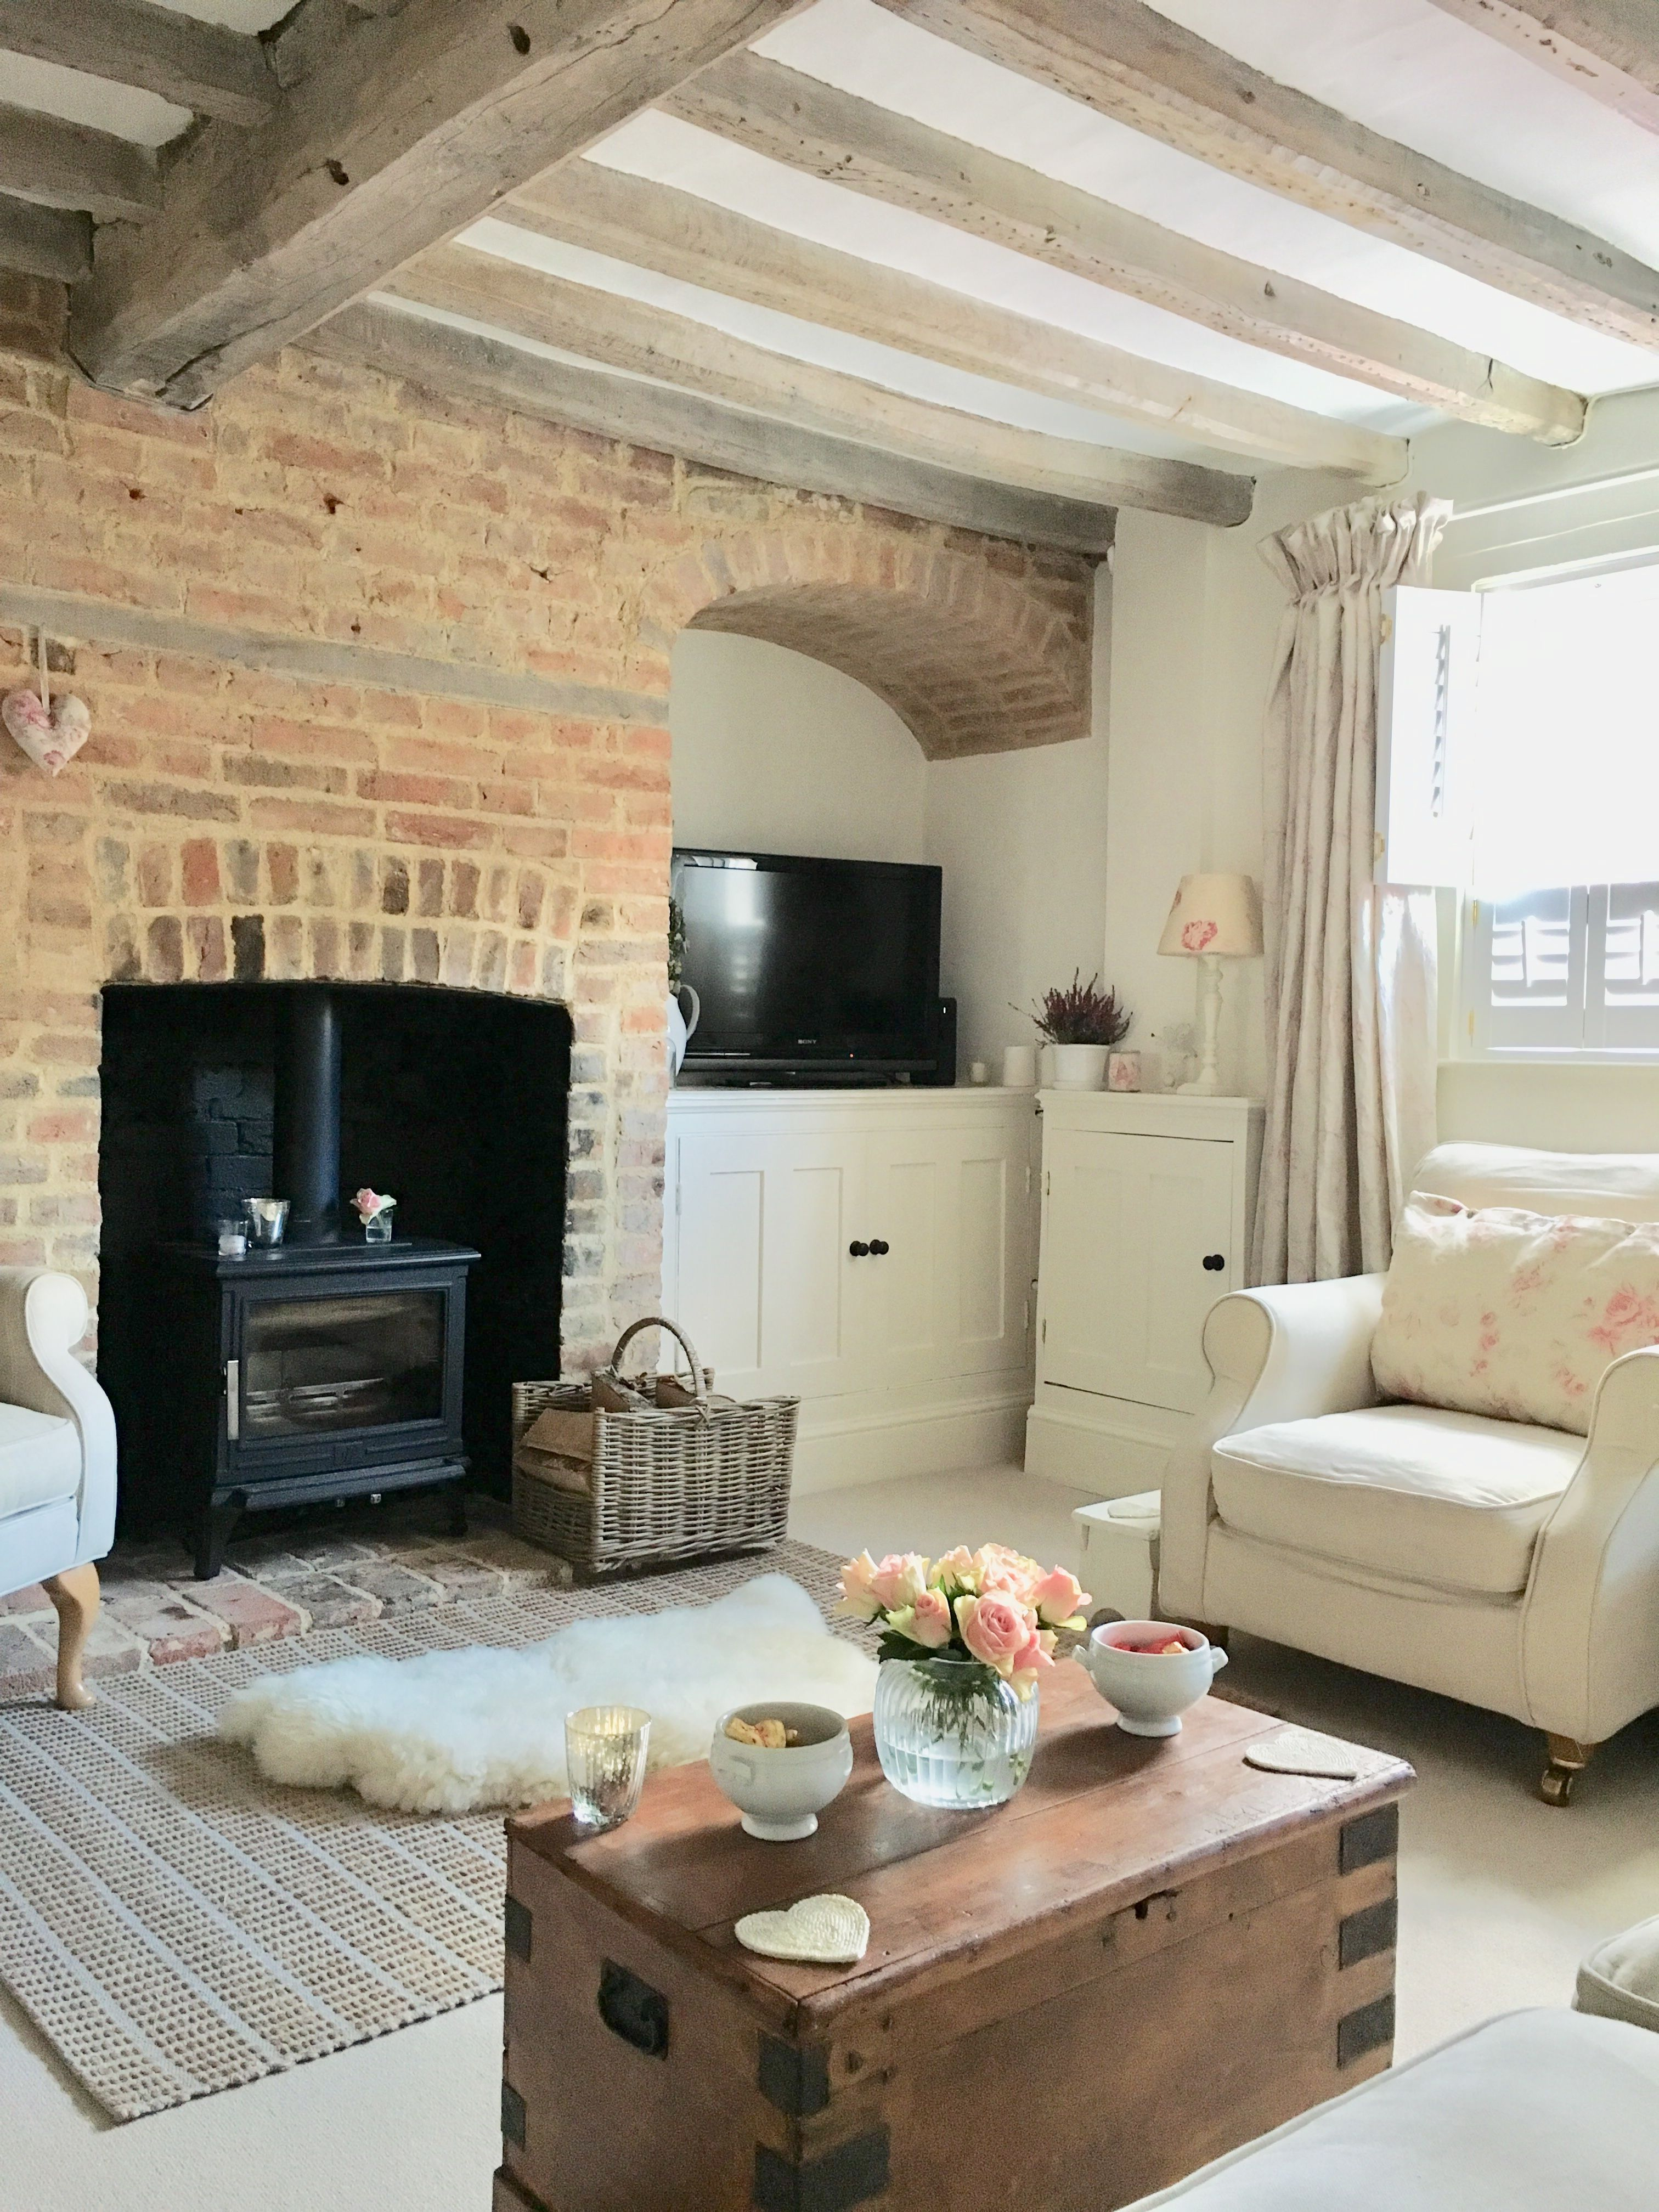 Pin By Rachel Keppner On Easthorpe Cottage Our Old Home First Renovation Project Country Cottage Living Room Cottage Living Rooms Cosy Living Room